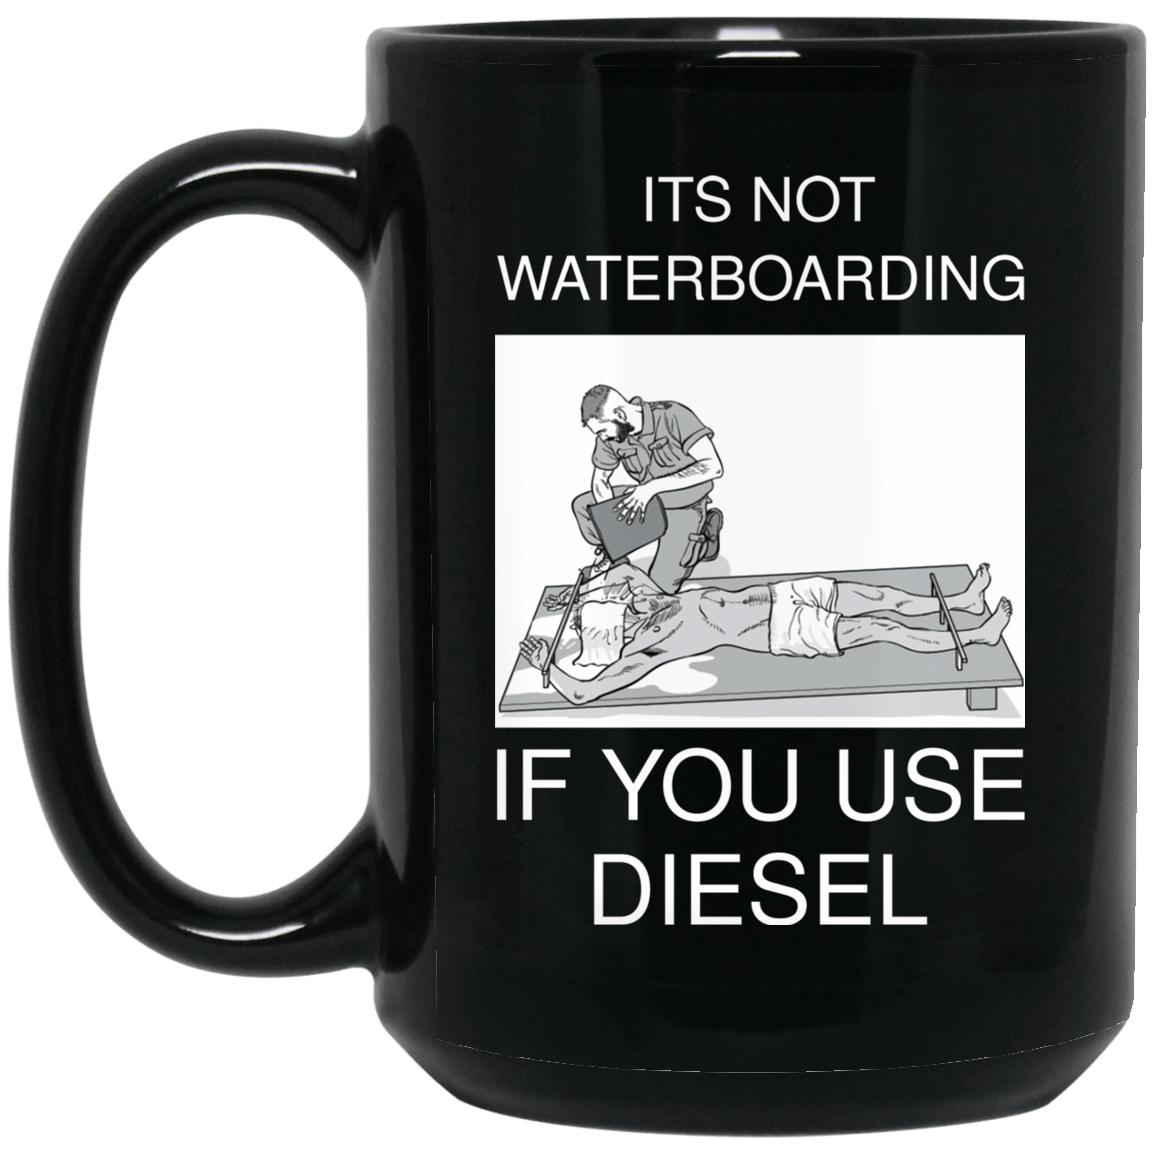 It's Not Waterboarding If You Use Diesel Mug 1066-10182-73423005-49311 - Tee Ript